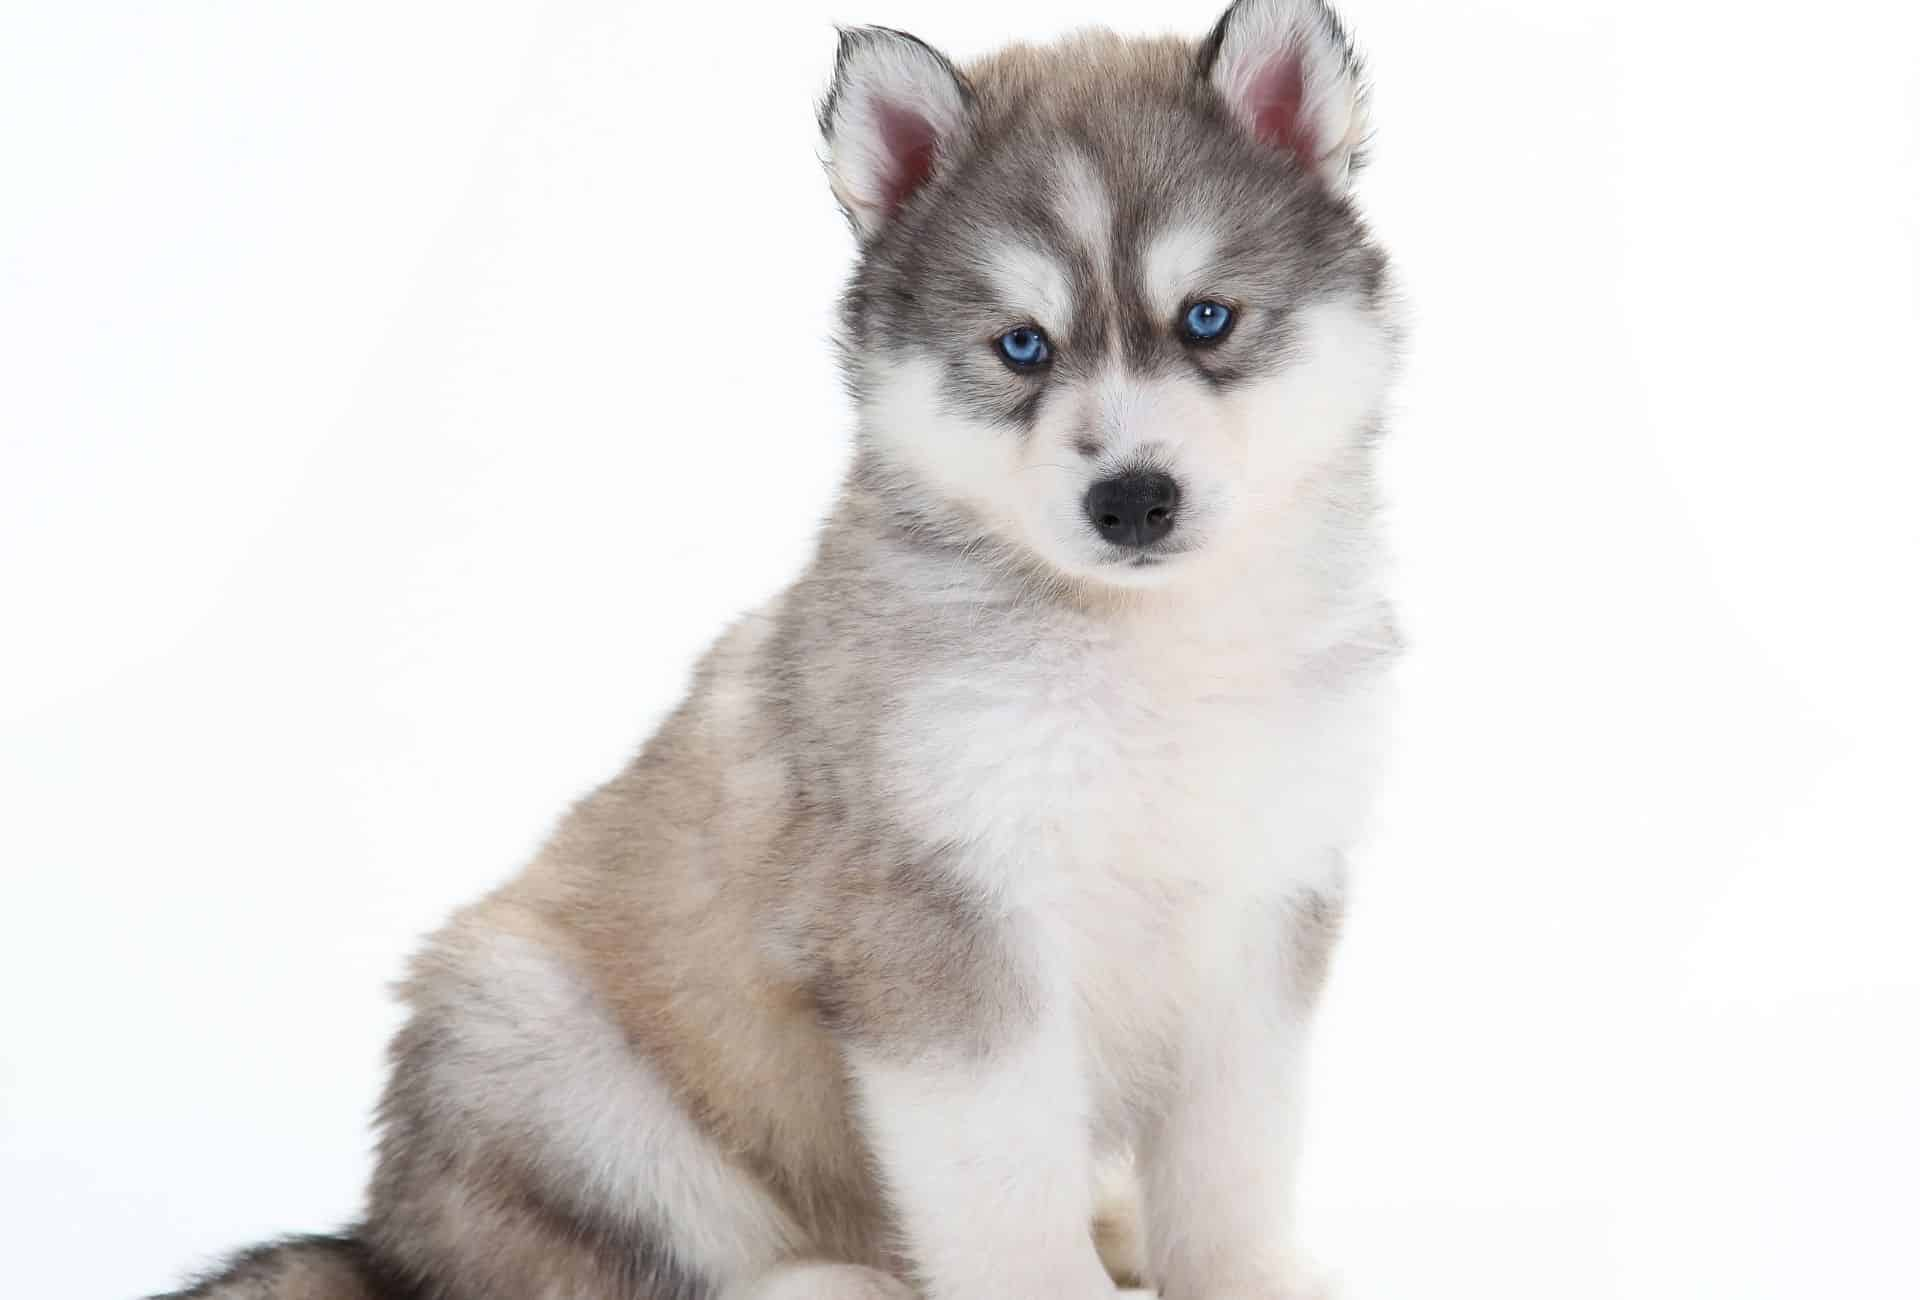 Fluffy Husky pup posing in front of white background.